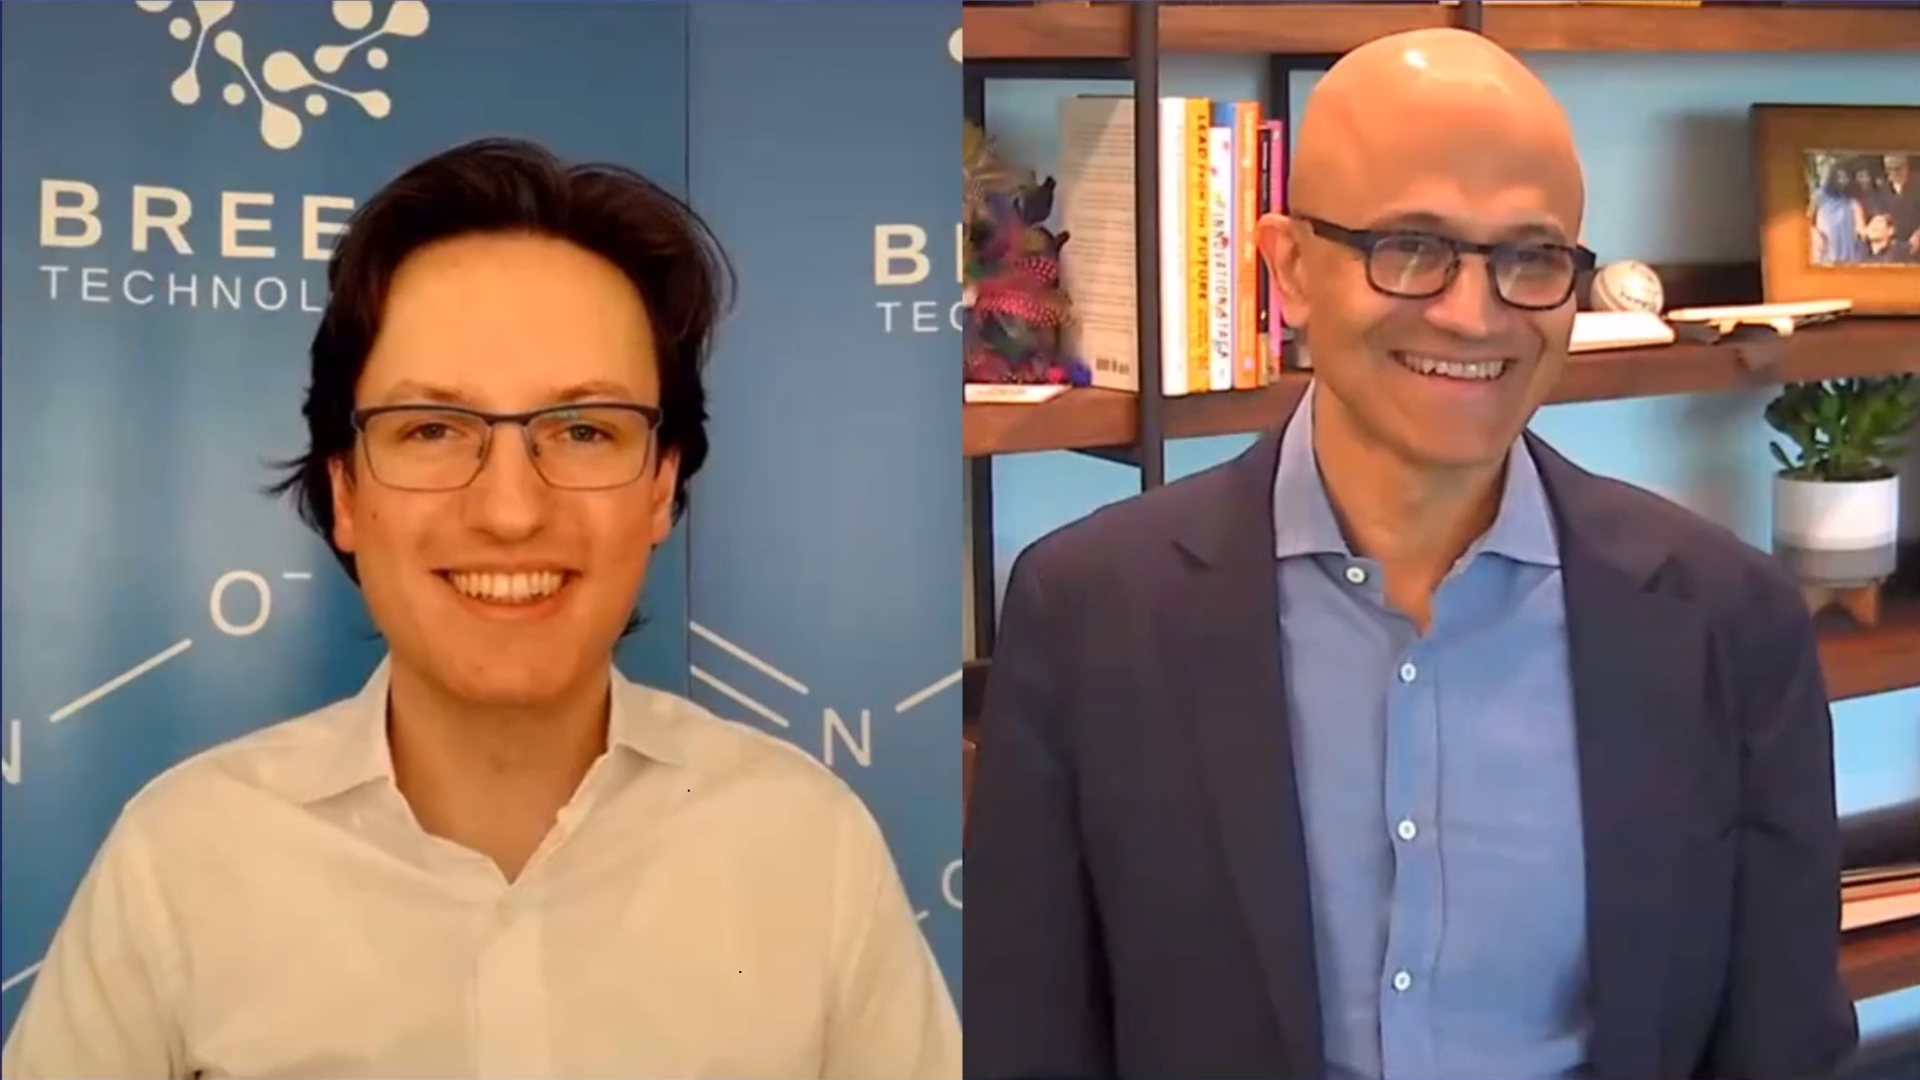 Satya Nadella visiting Breeze Technologies during his virtual country tour through Germany